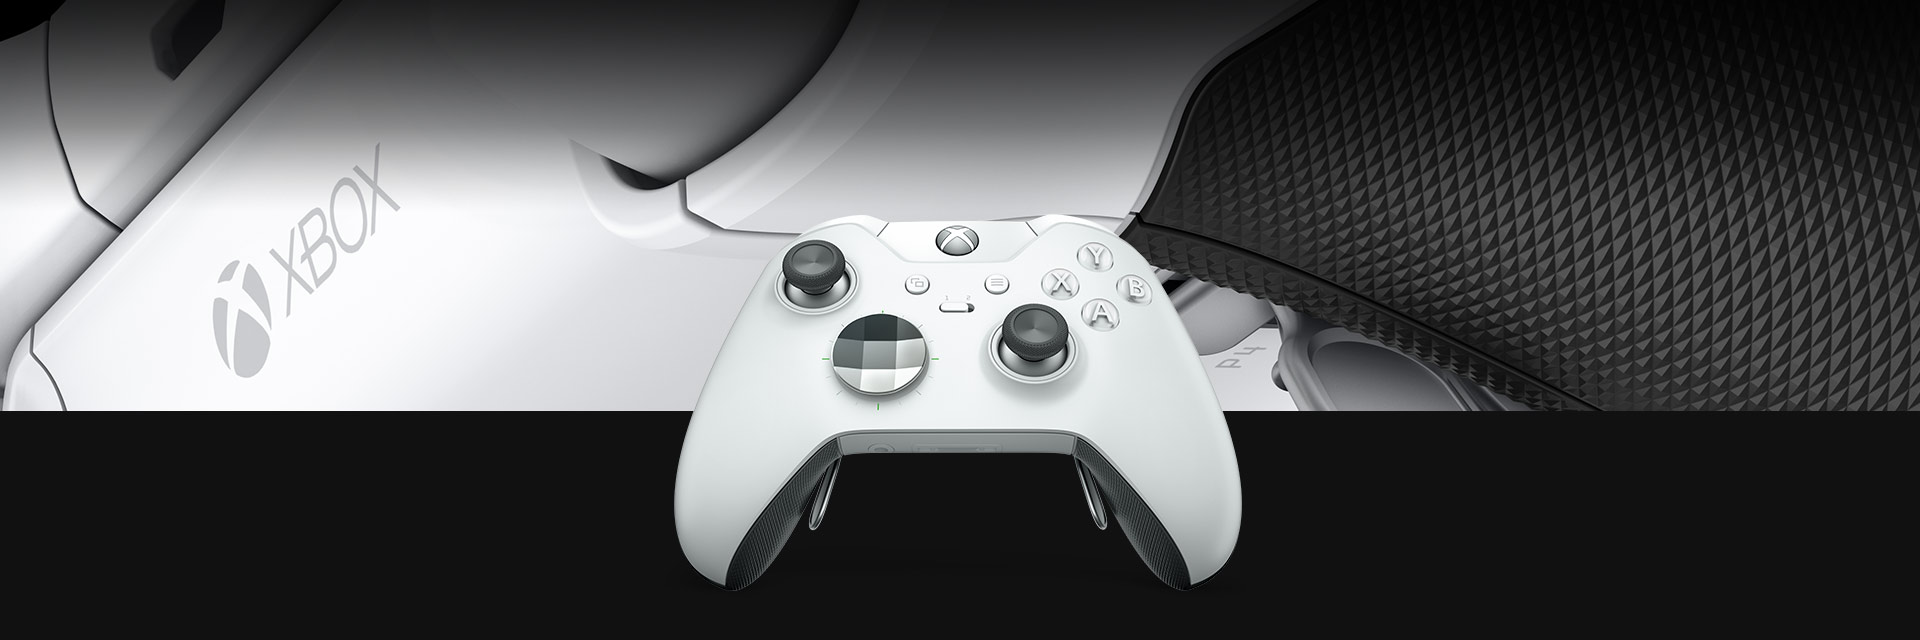 medium resolution of front view of the xbox one white elite wireless controller